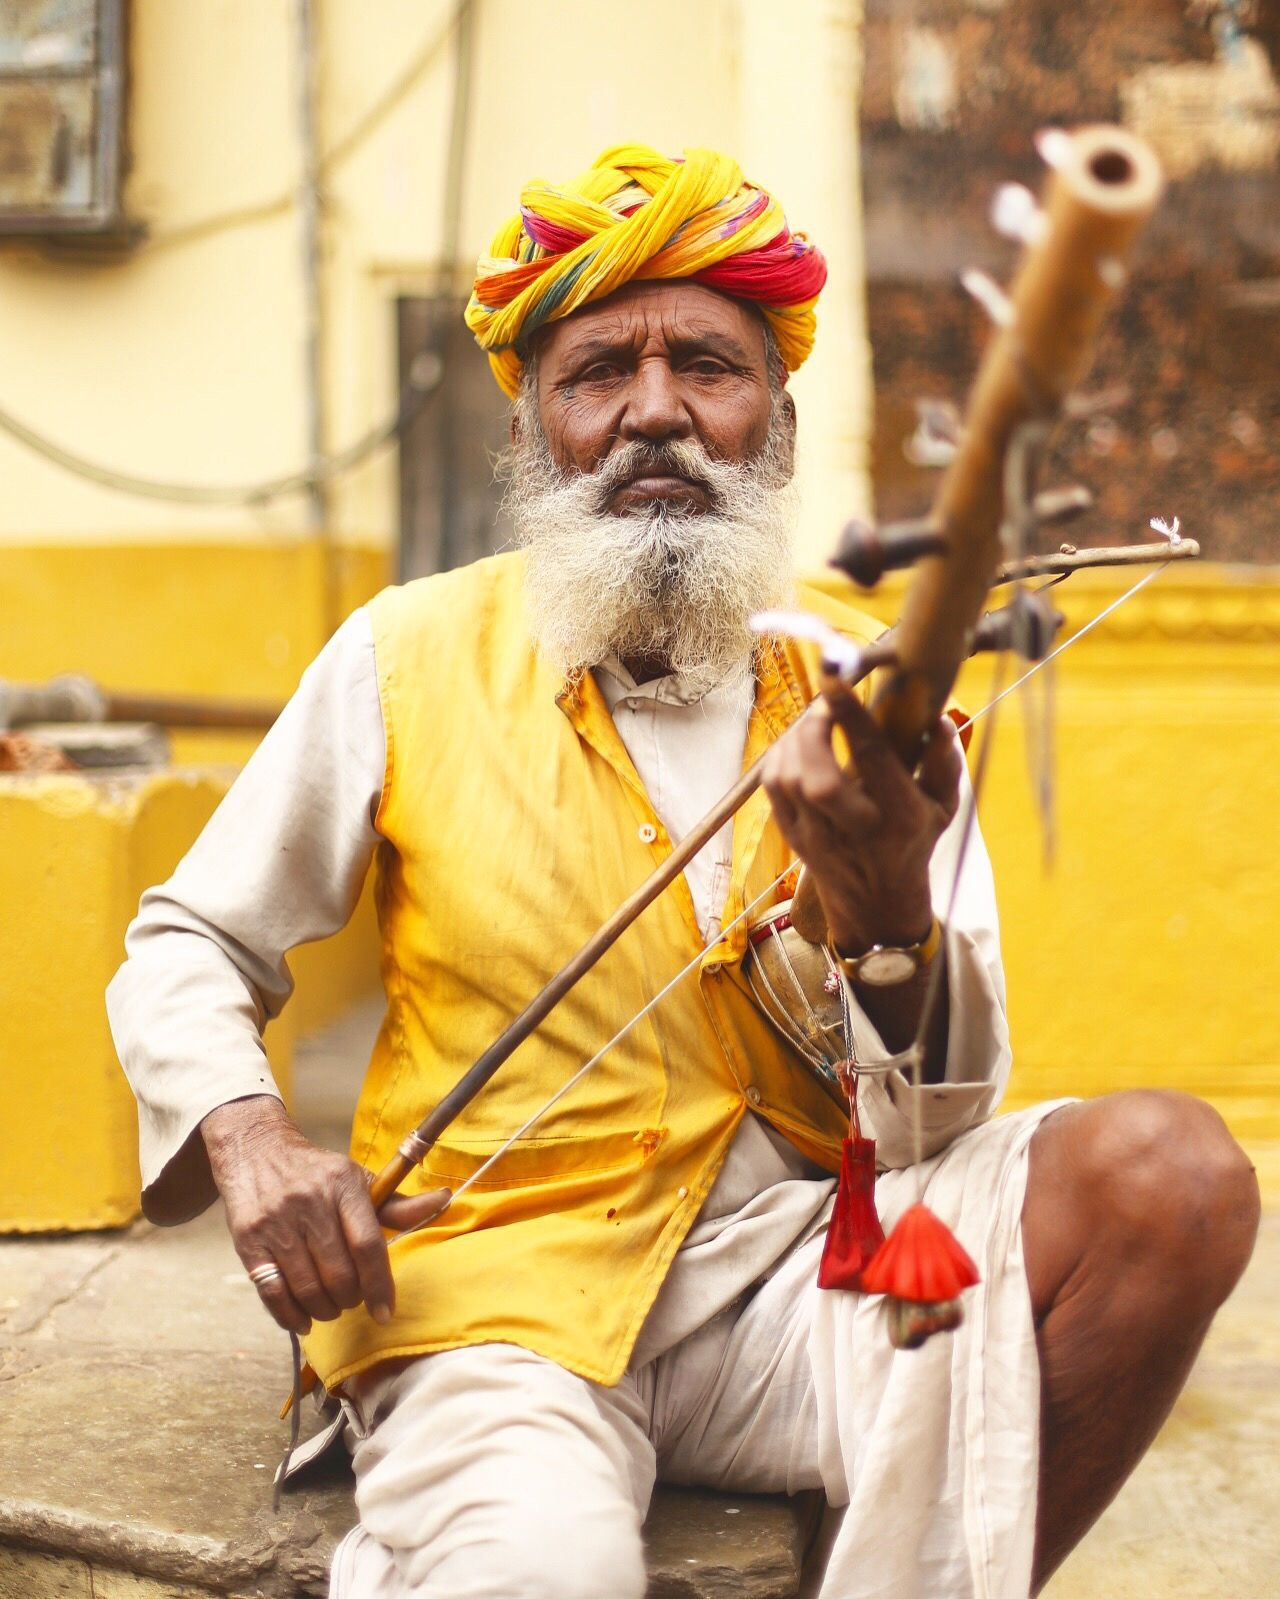 Uniqueness Potrait Beard Yellow One Person One Man Only Adults Only Turban Only Men Traditional Clothing People City Religion Adult Outdoors City Life Cultures Men Real People Jewelry Human Body Part Musical Instrument Old Age Music Musician